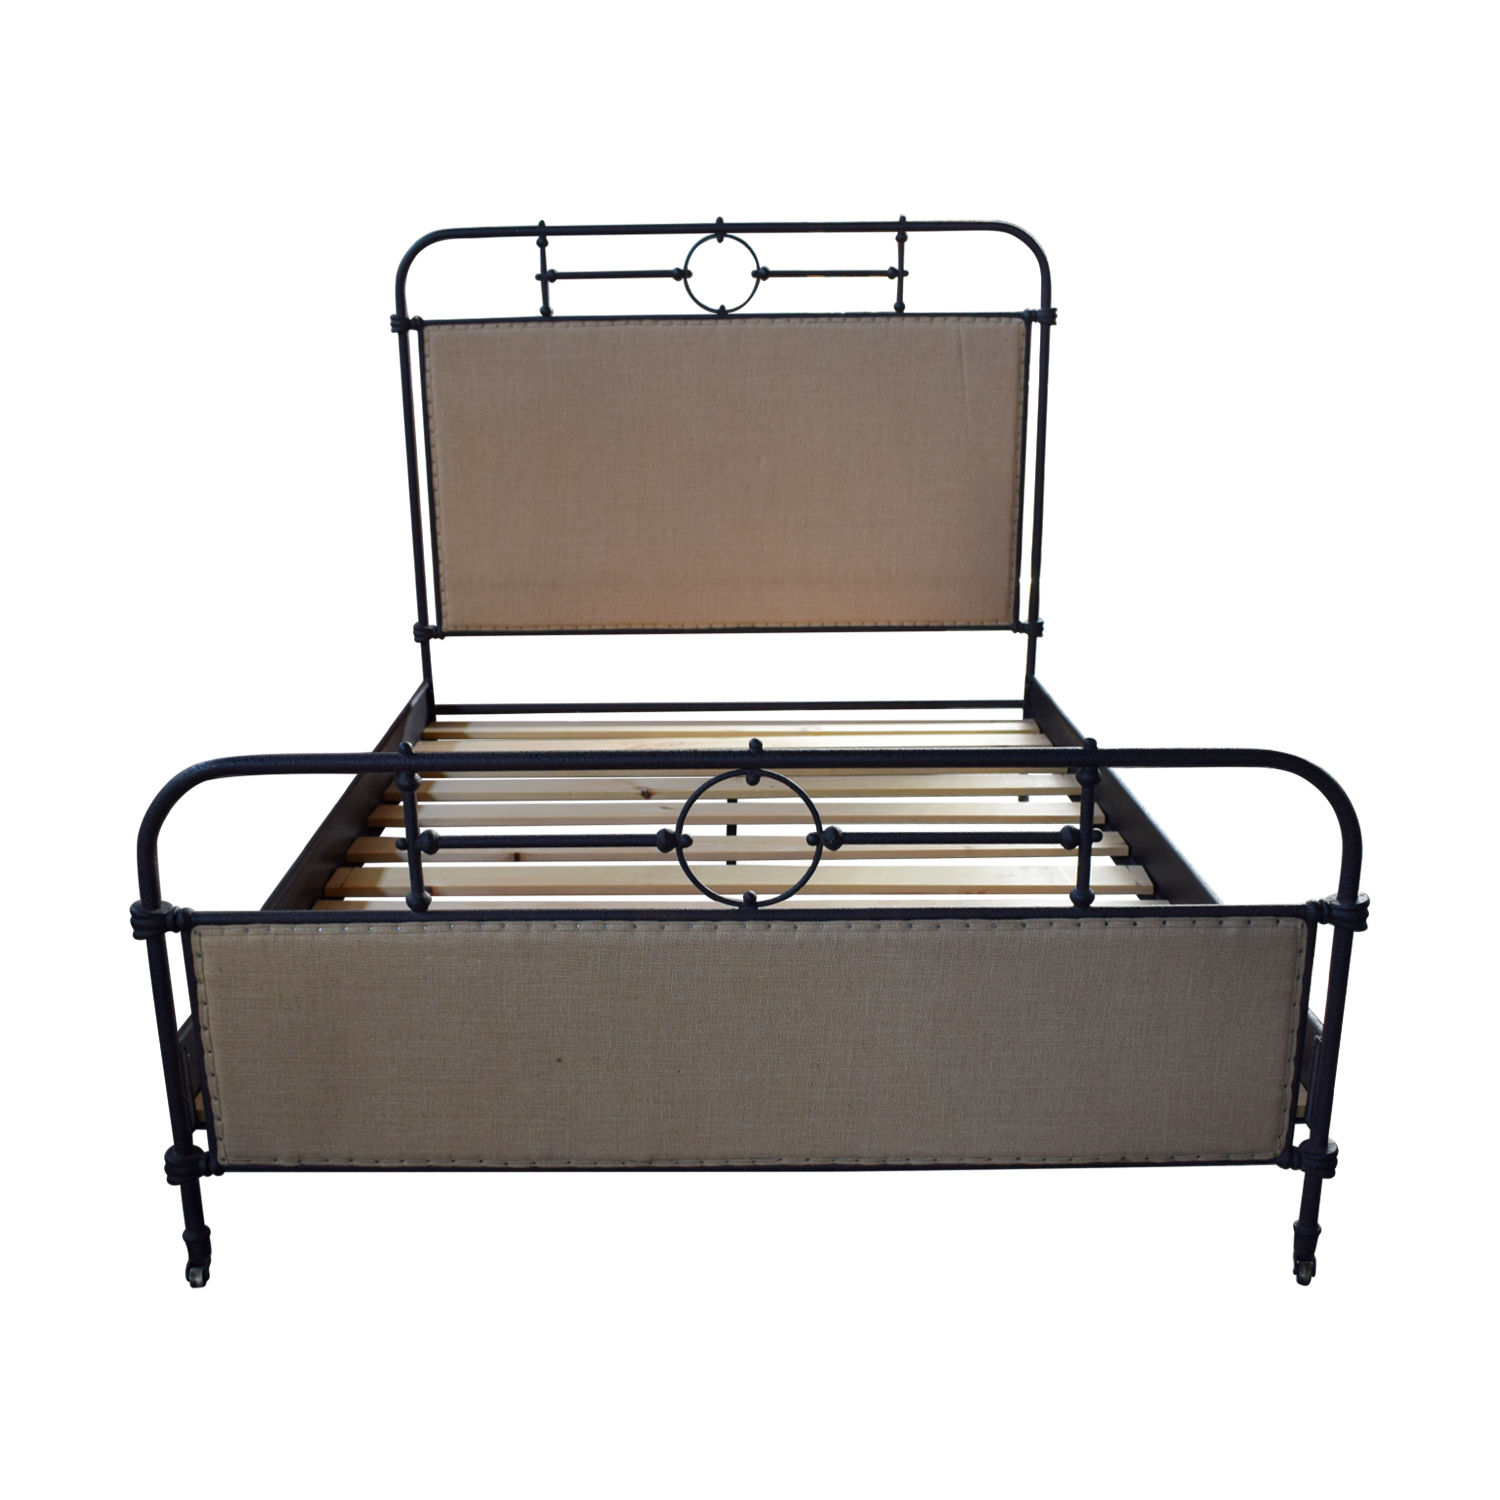 buy ABC Home ABC Home Upholstered Metal Queen Bed online